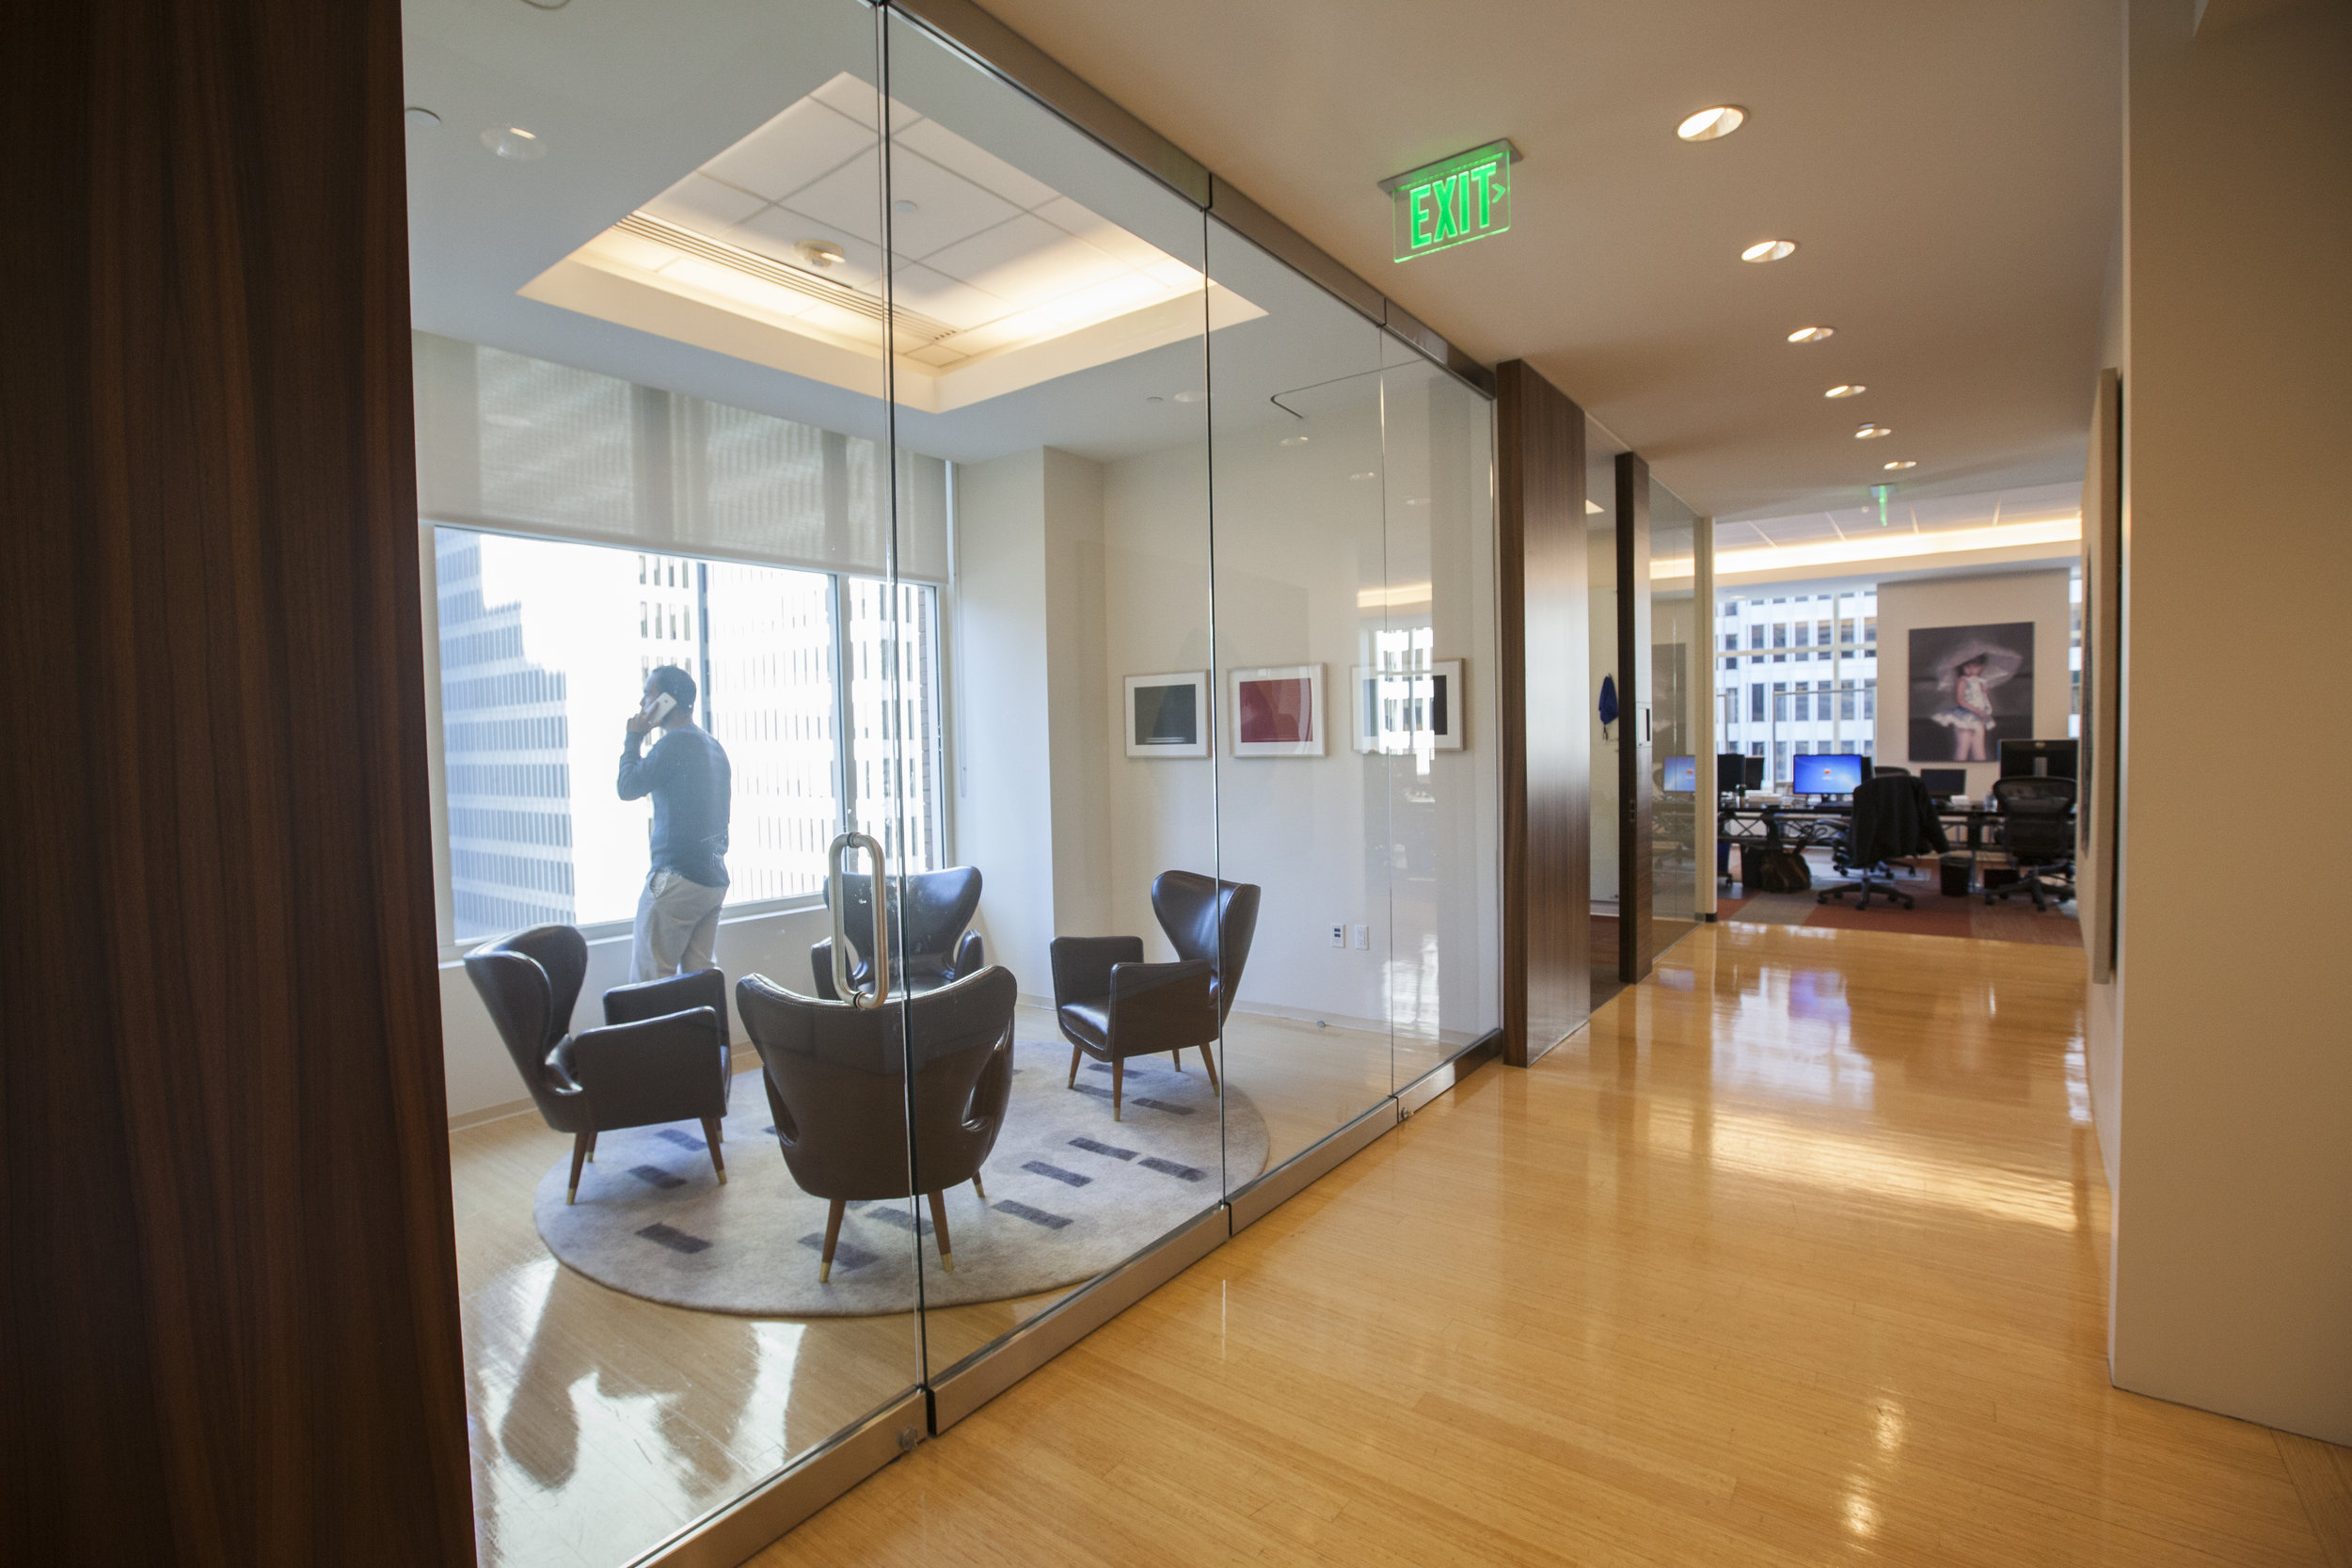 As you round the corner of the elevator lobby, the hall leads you to a private meeting space flanked by offices and conference rooms. Now with this operational glass wall it has the ability to be fully closed off with a door, or a fully open space.